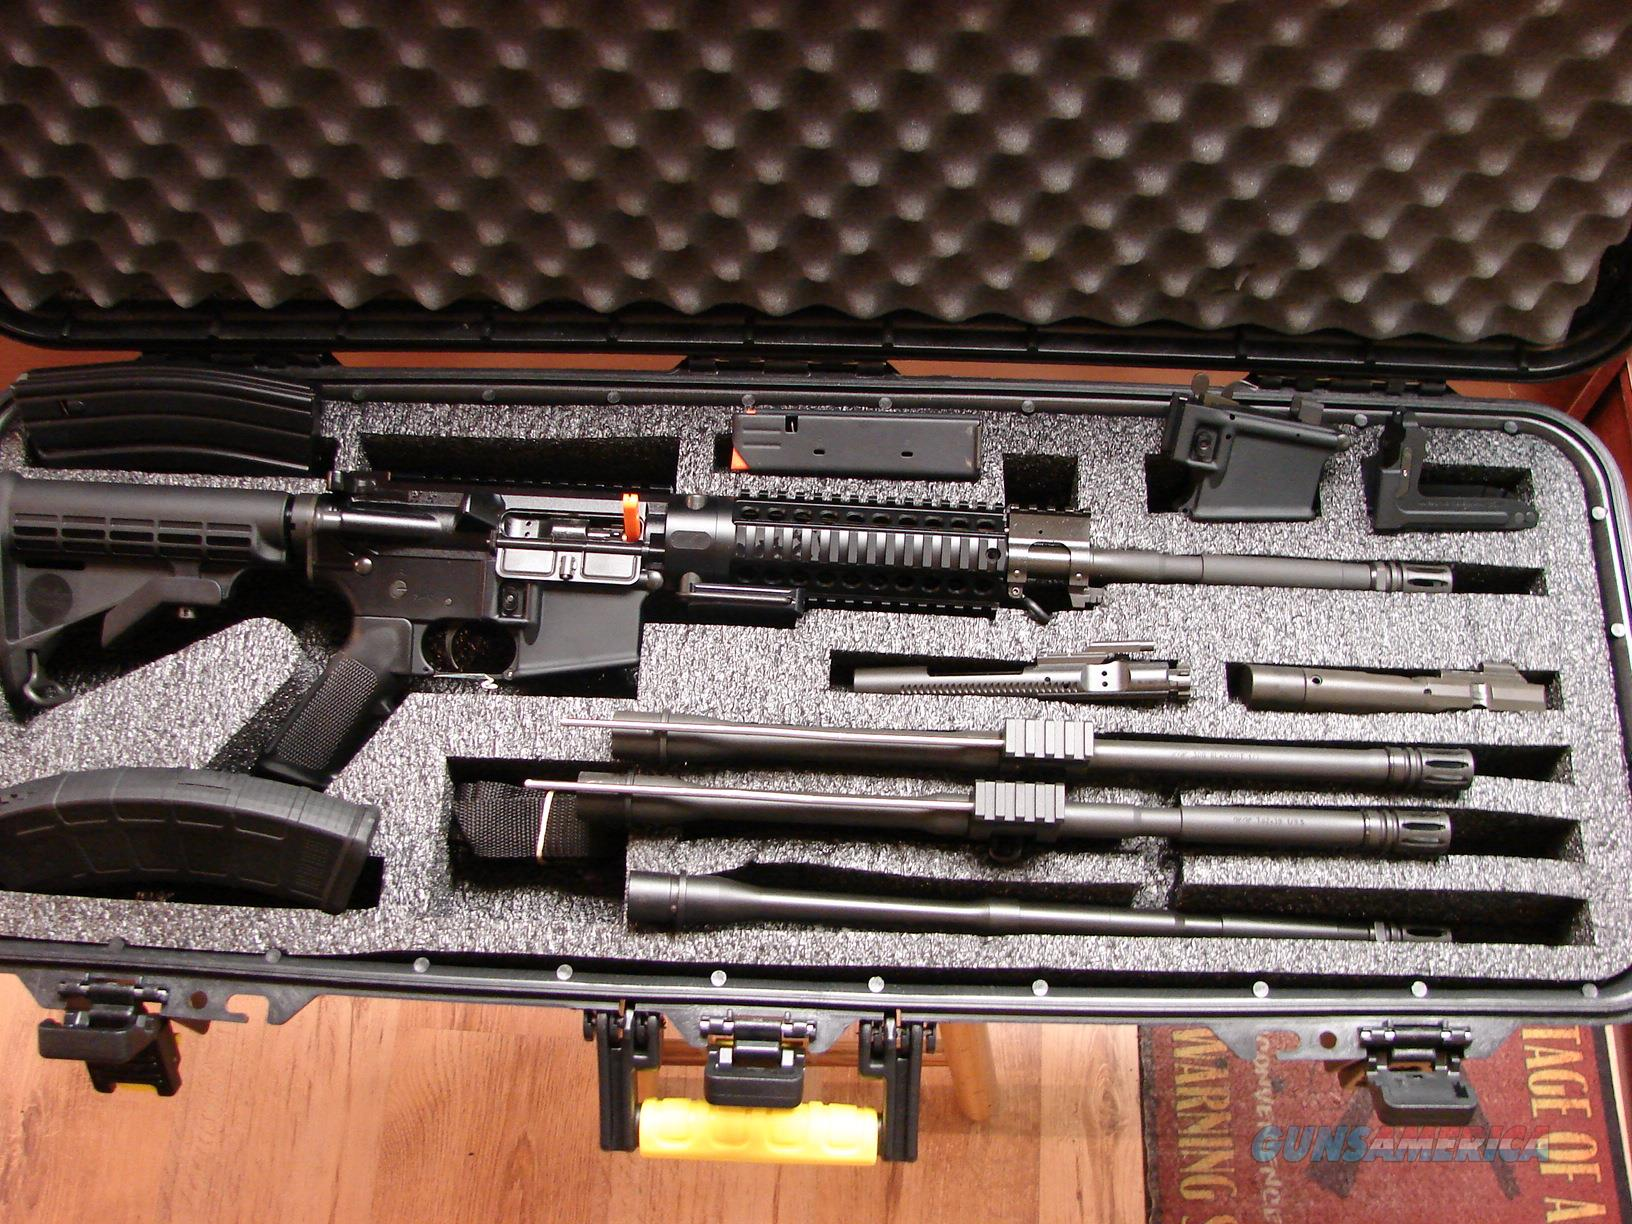 Windham Weaponry RMCS - 4  Multi-Rifle Kit - Four Calibers in One AR Platform -223/5.56/300BlK/7.62x39 & 9mm  Guns > Rifles > Windham Weaponry Rifles